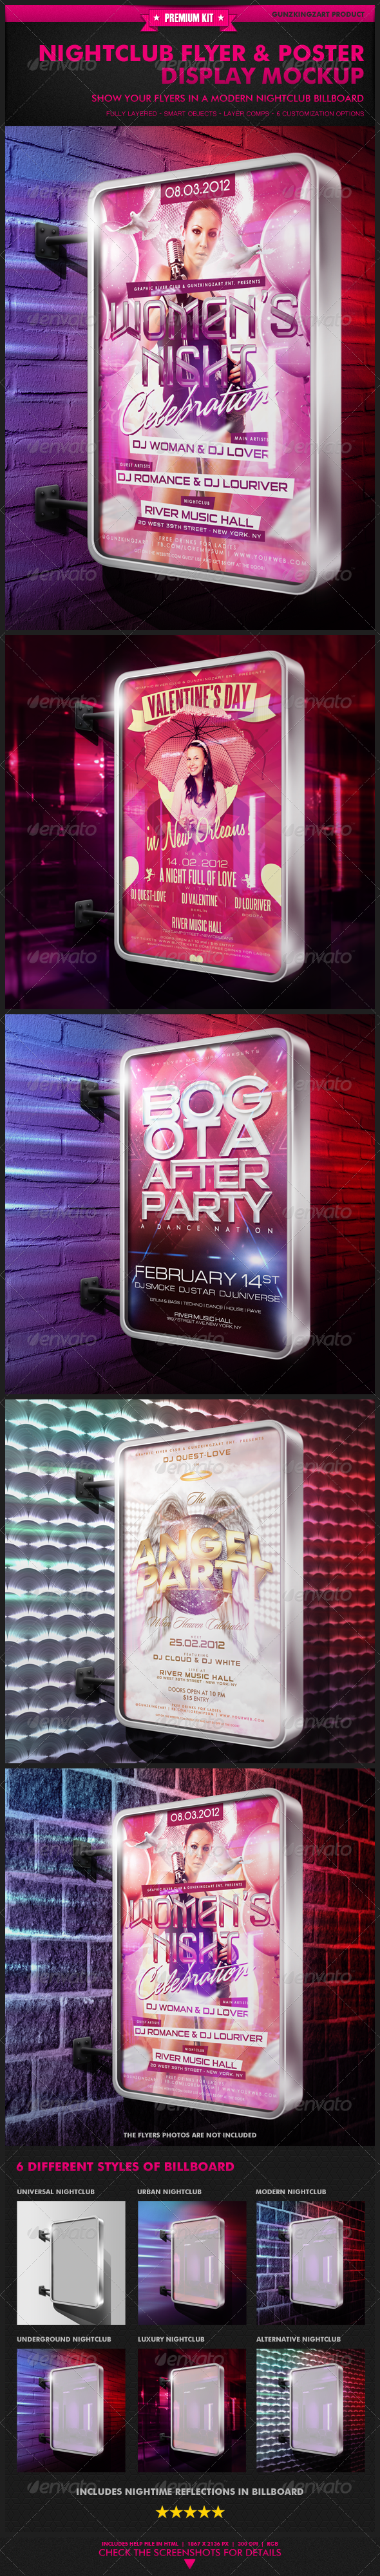 Nightclub Flyer & Poster Display Mockup - Flyers Print